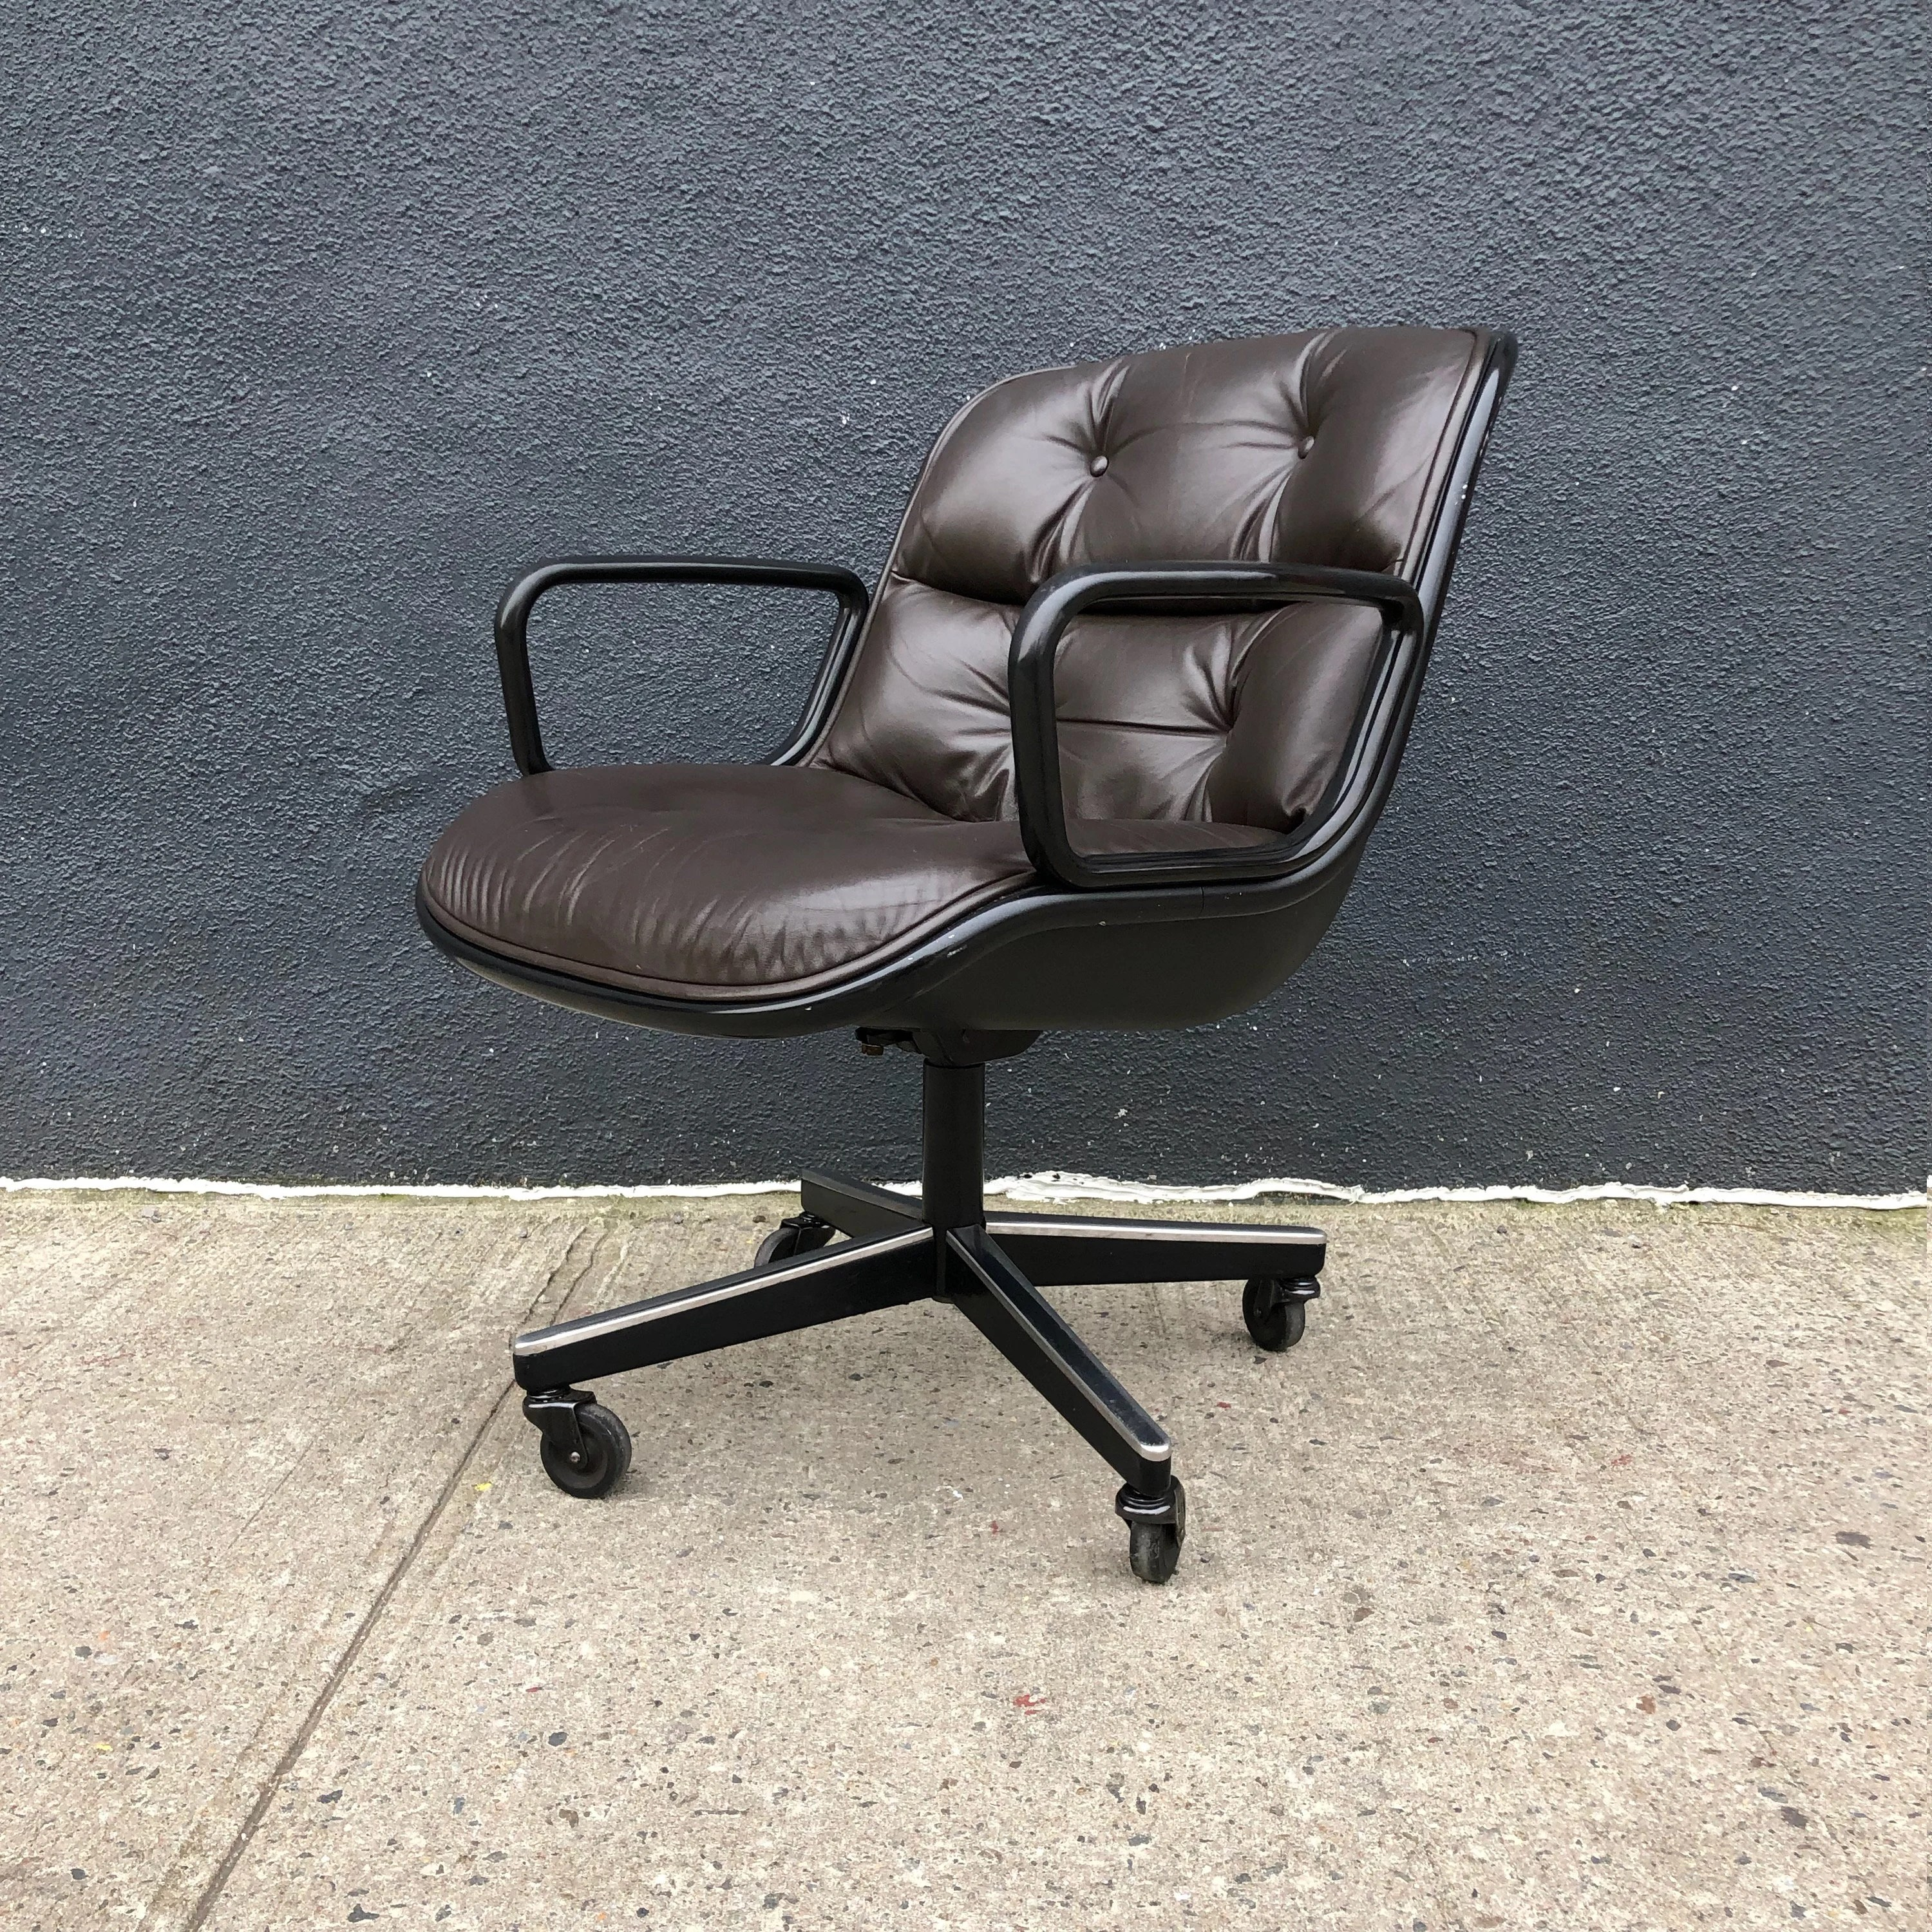 pollock executive chair replica hampton bay outdoor chairs etsy knoll in brown leather